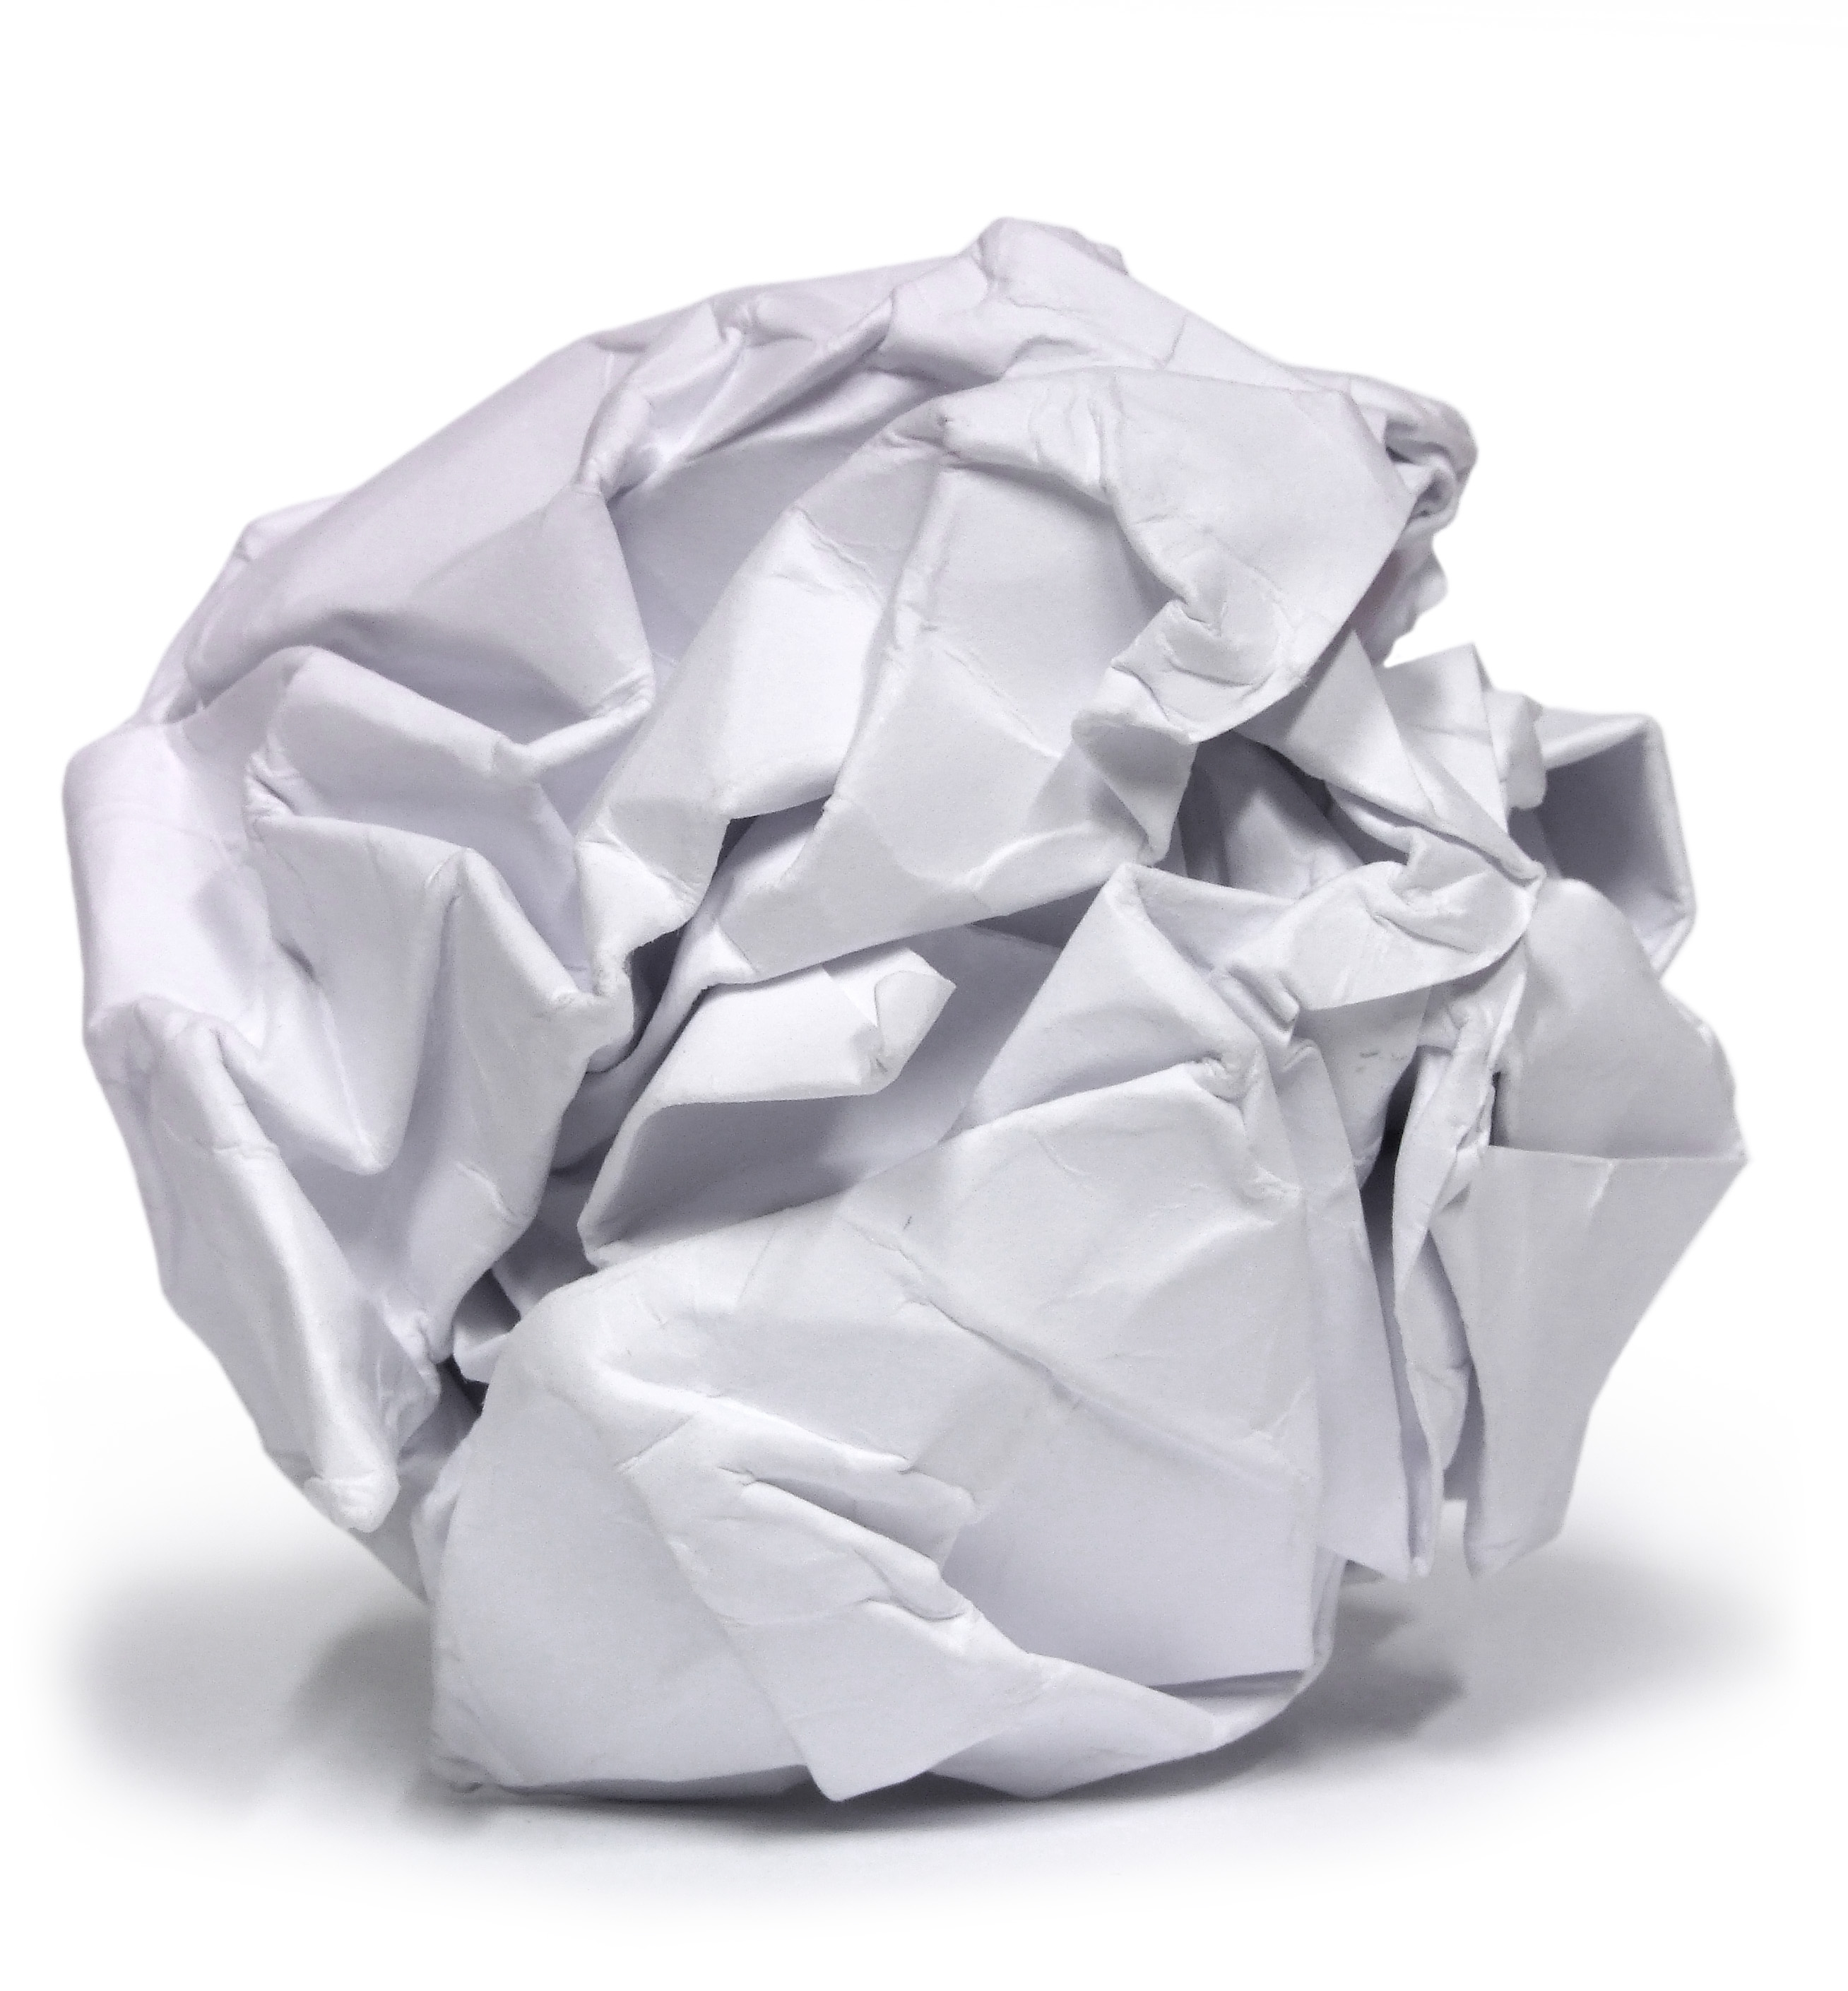 Crumpled paper clipart png